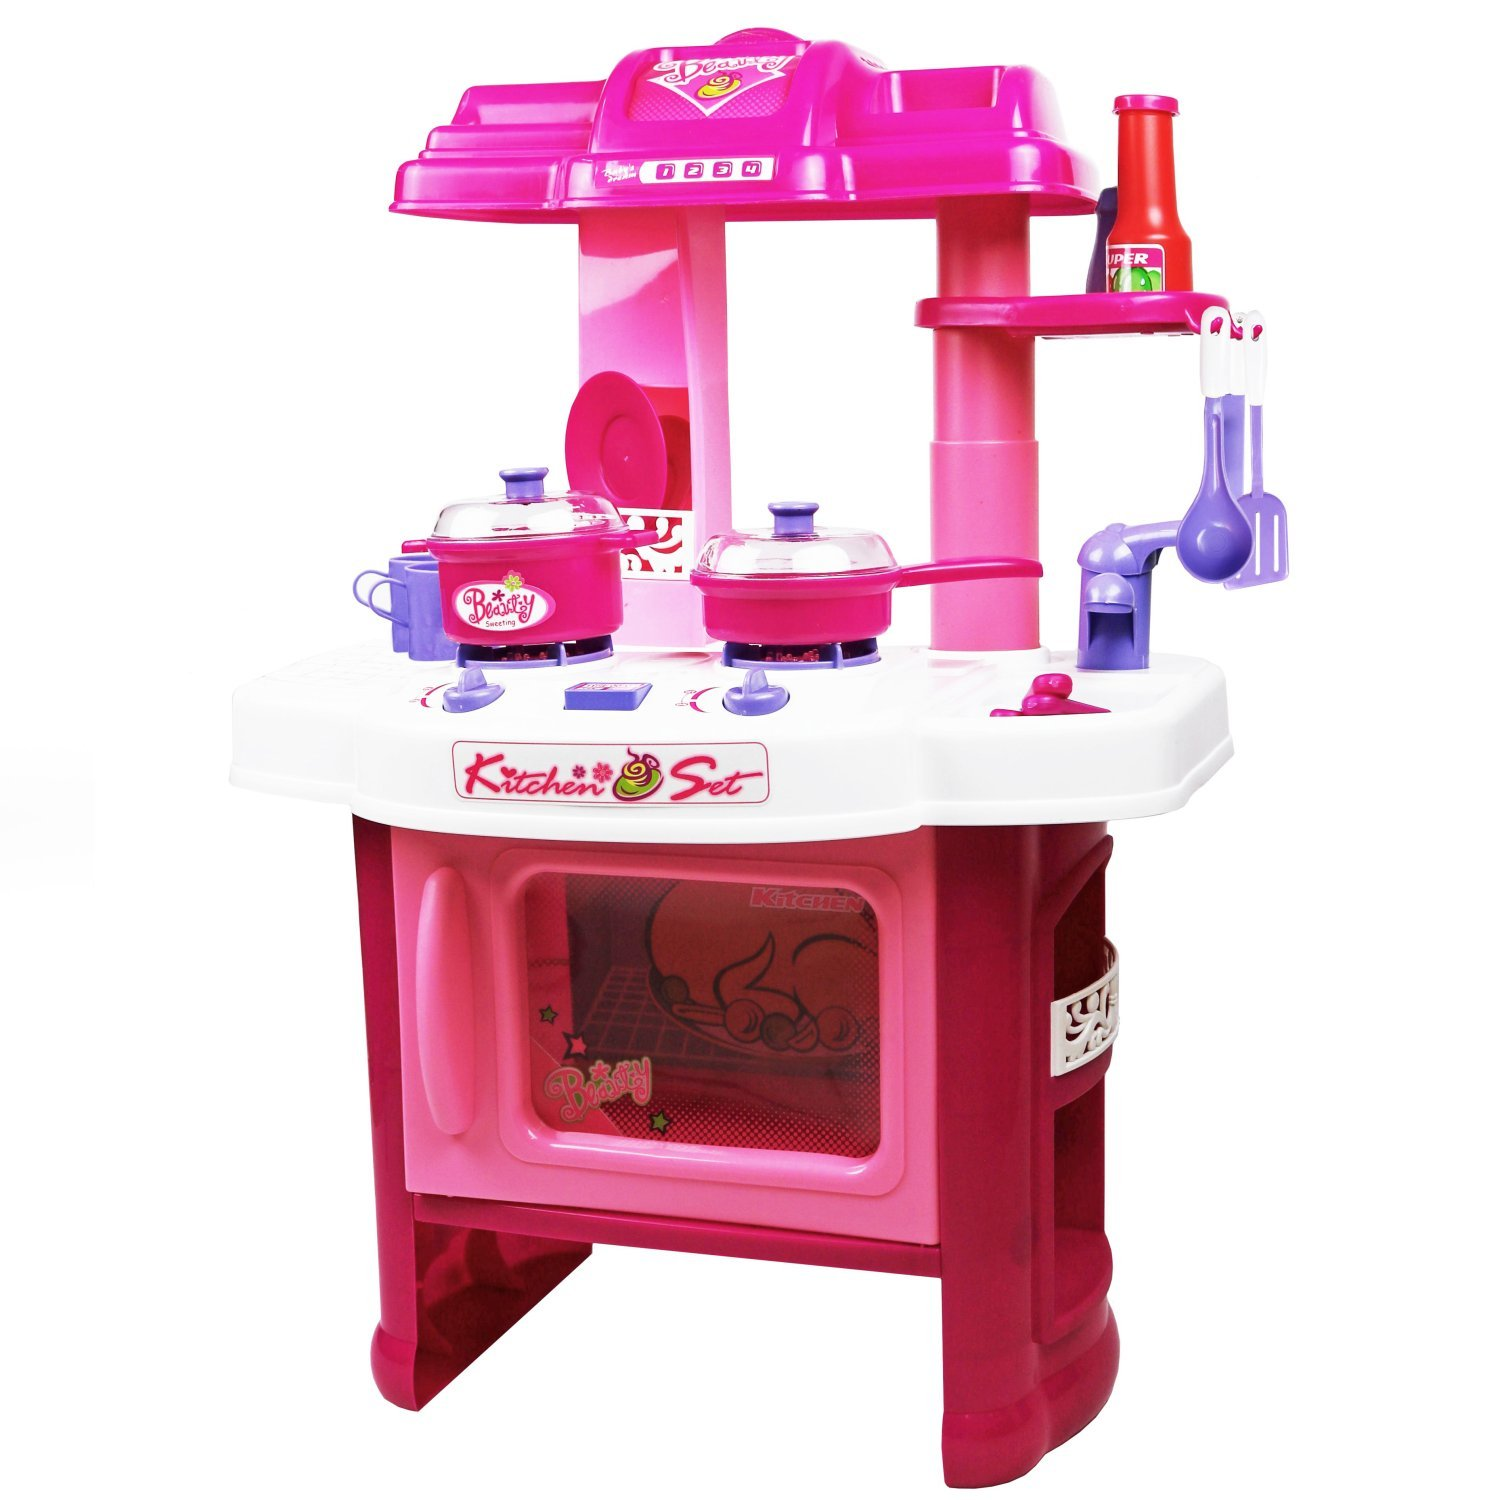 Electronic Kitchen Set: Childrens Kids Pink Play Electronic Kitchen Cooking